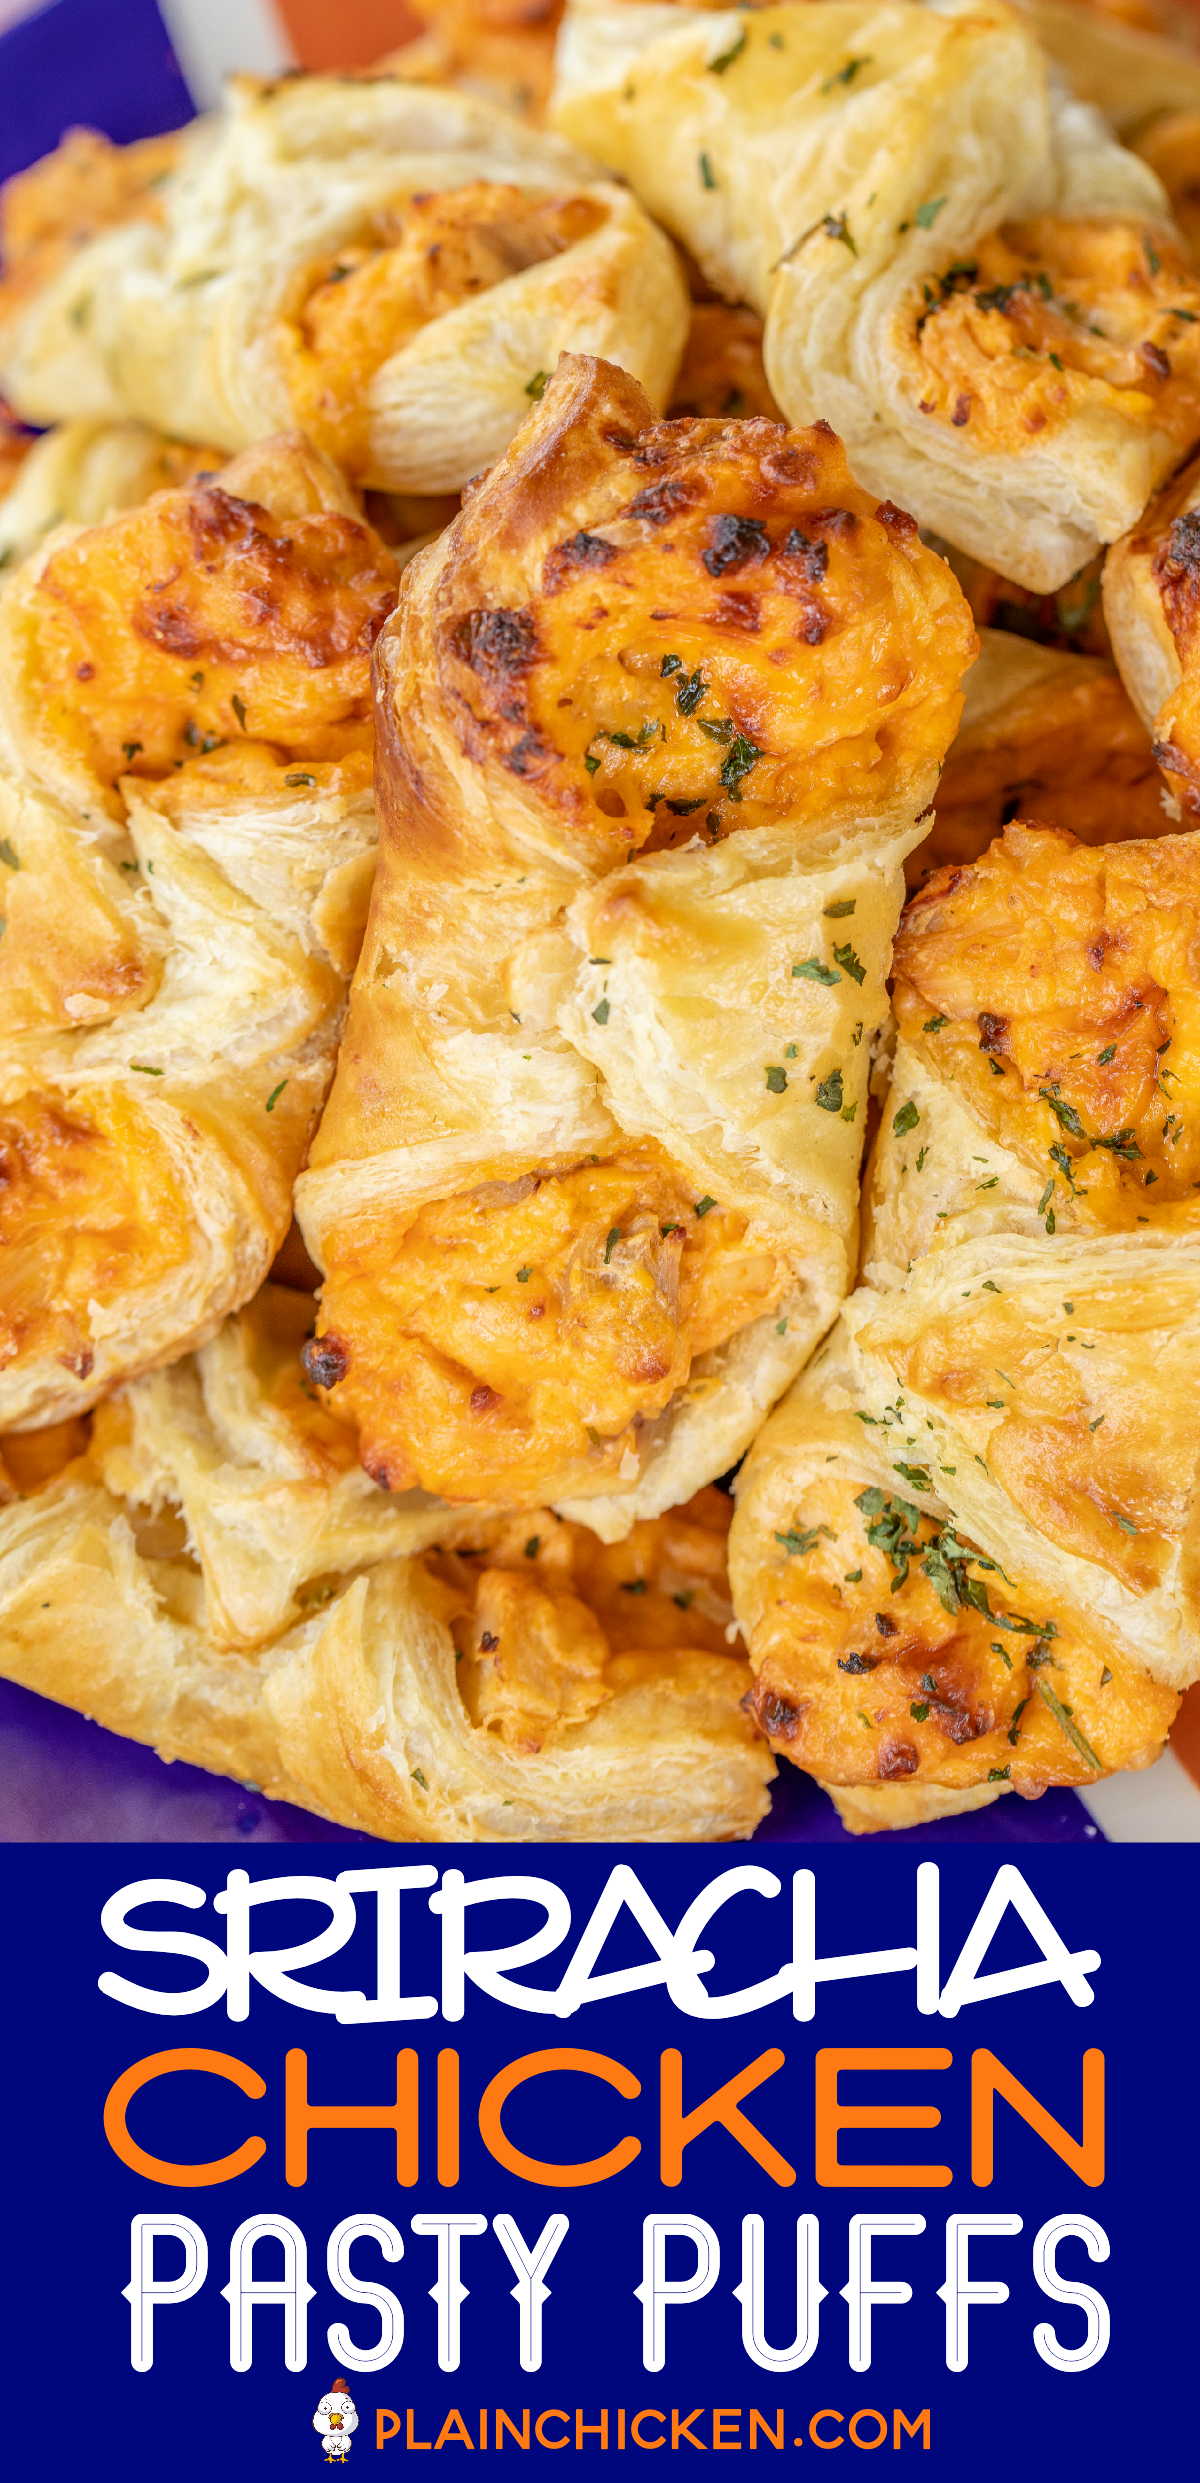 Sriracha Chicken Pastry Puffs - Football Friday - Plain Chicken